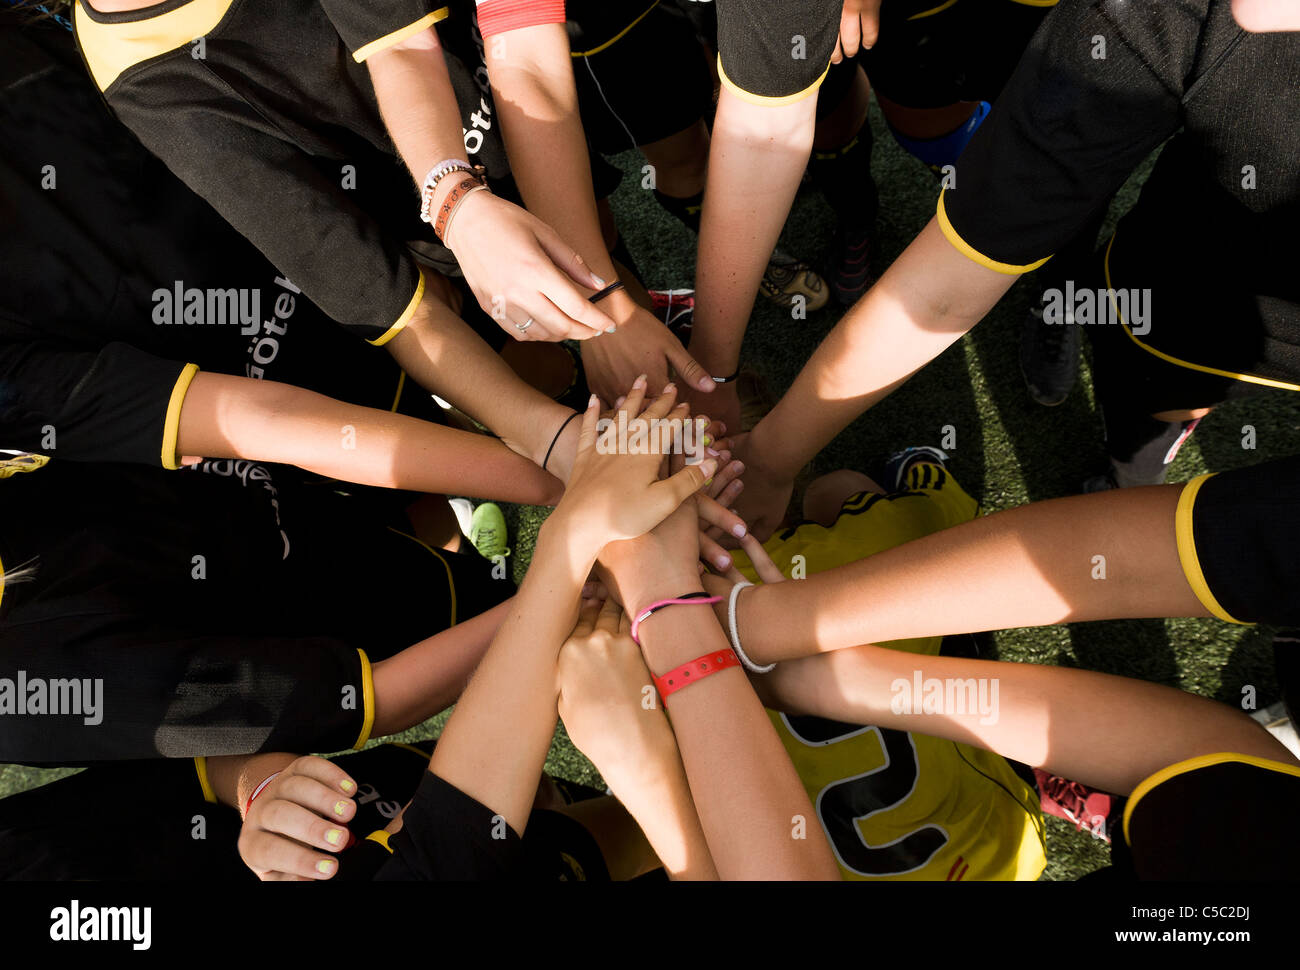 Close-up of football players with hands over one another - Stock Image